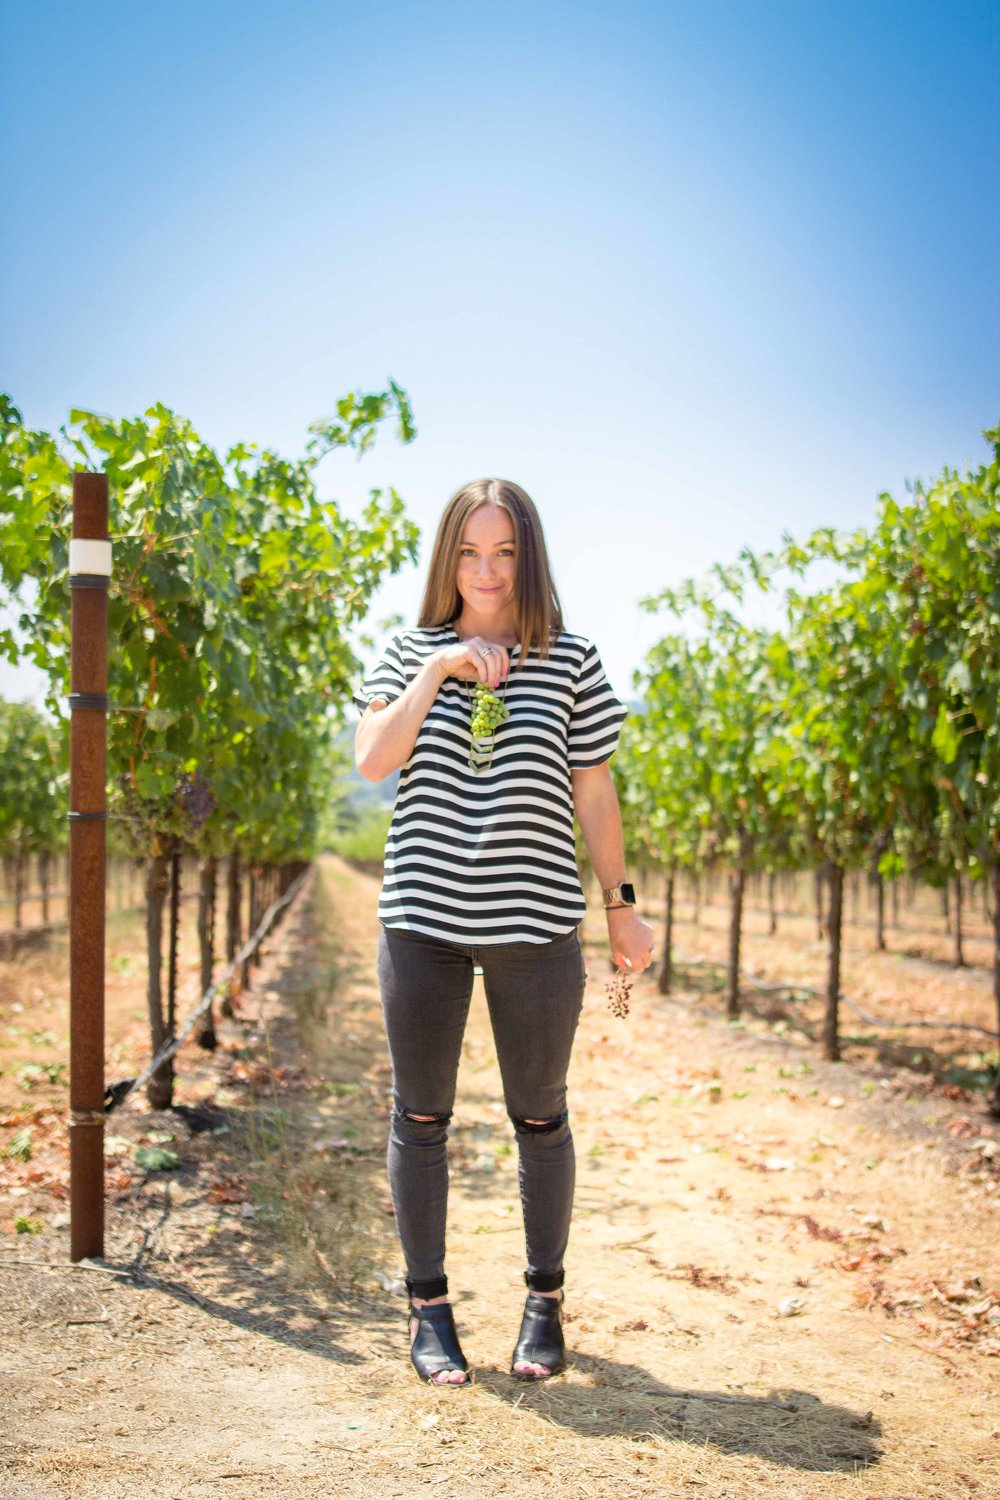 Kim Playing in the Vineyards